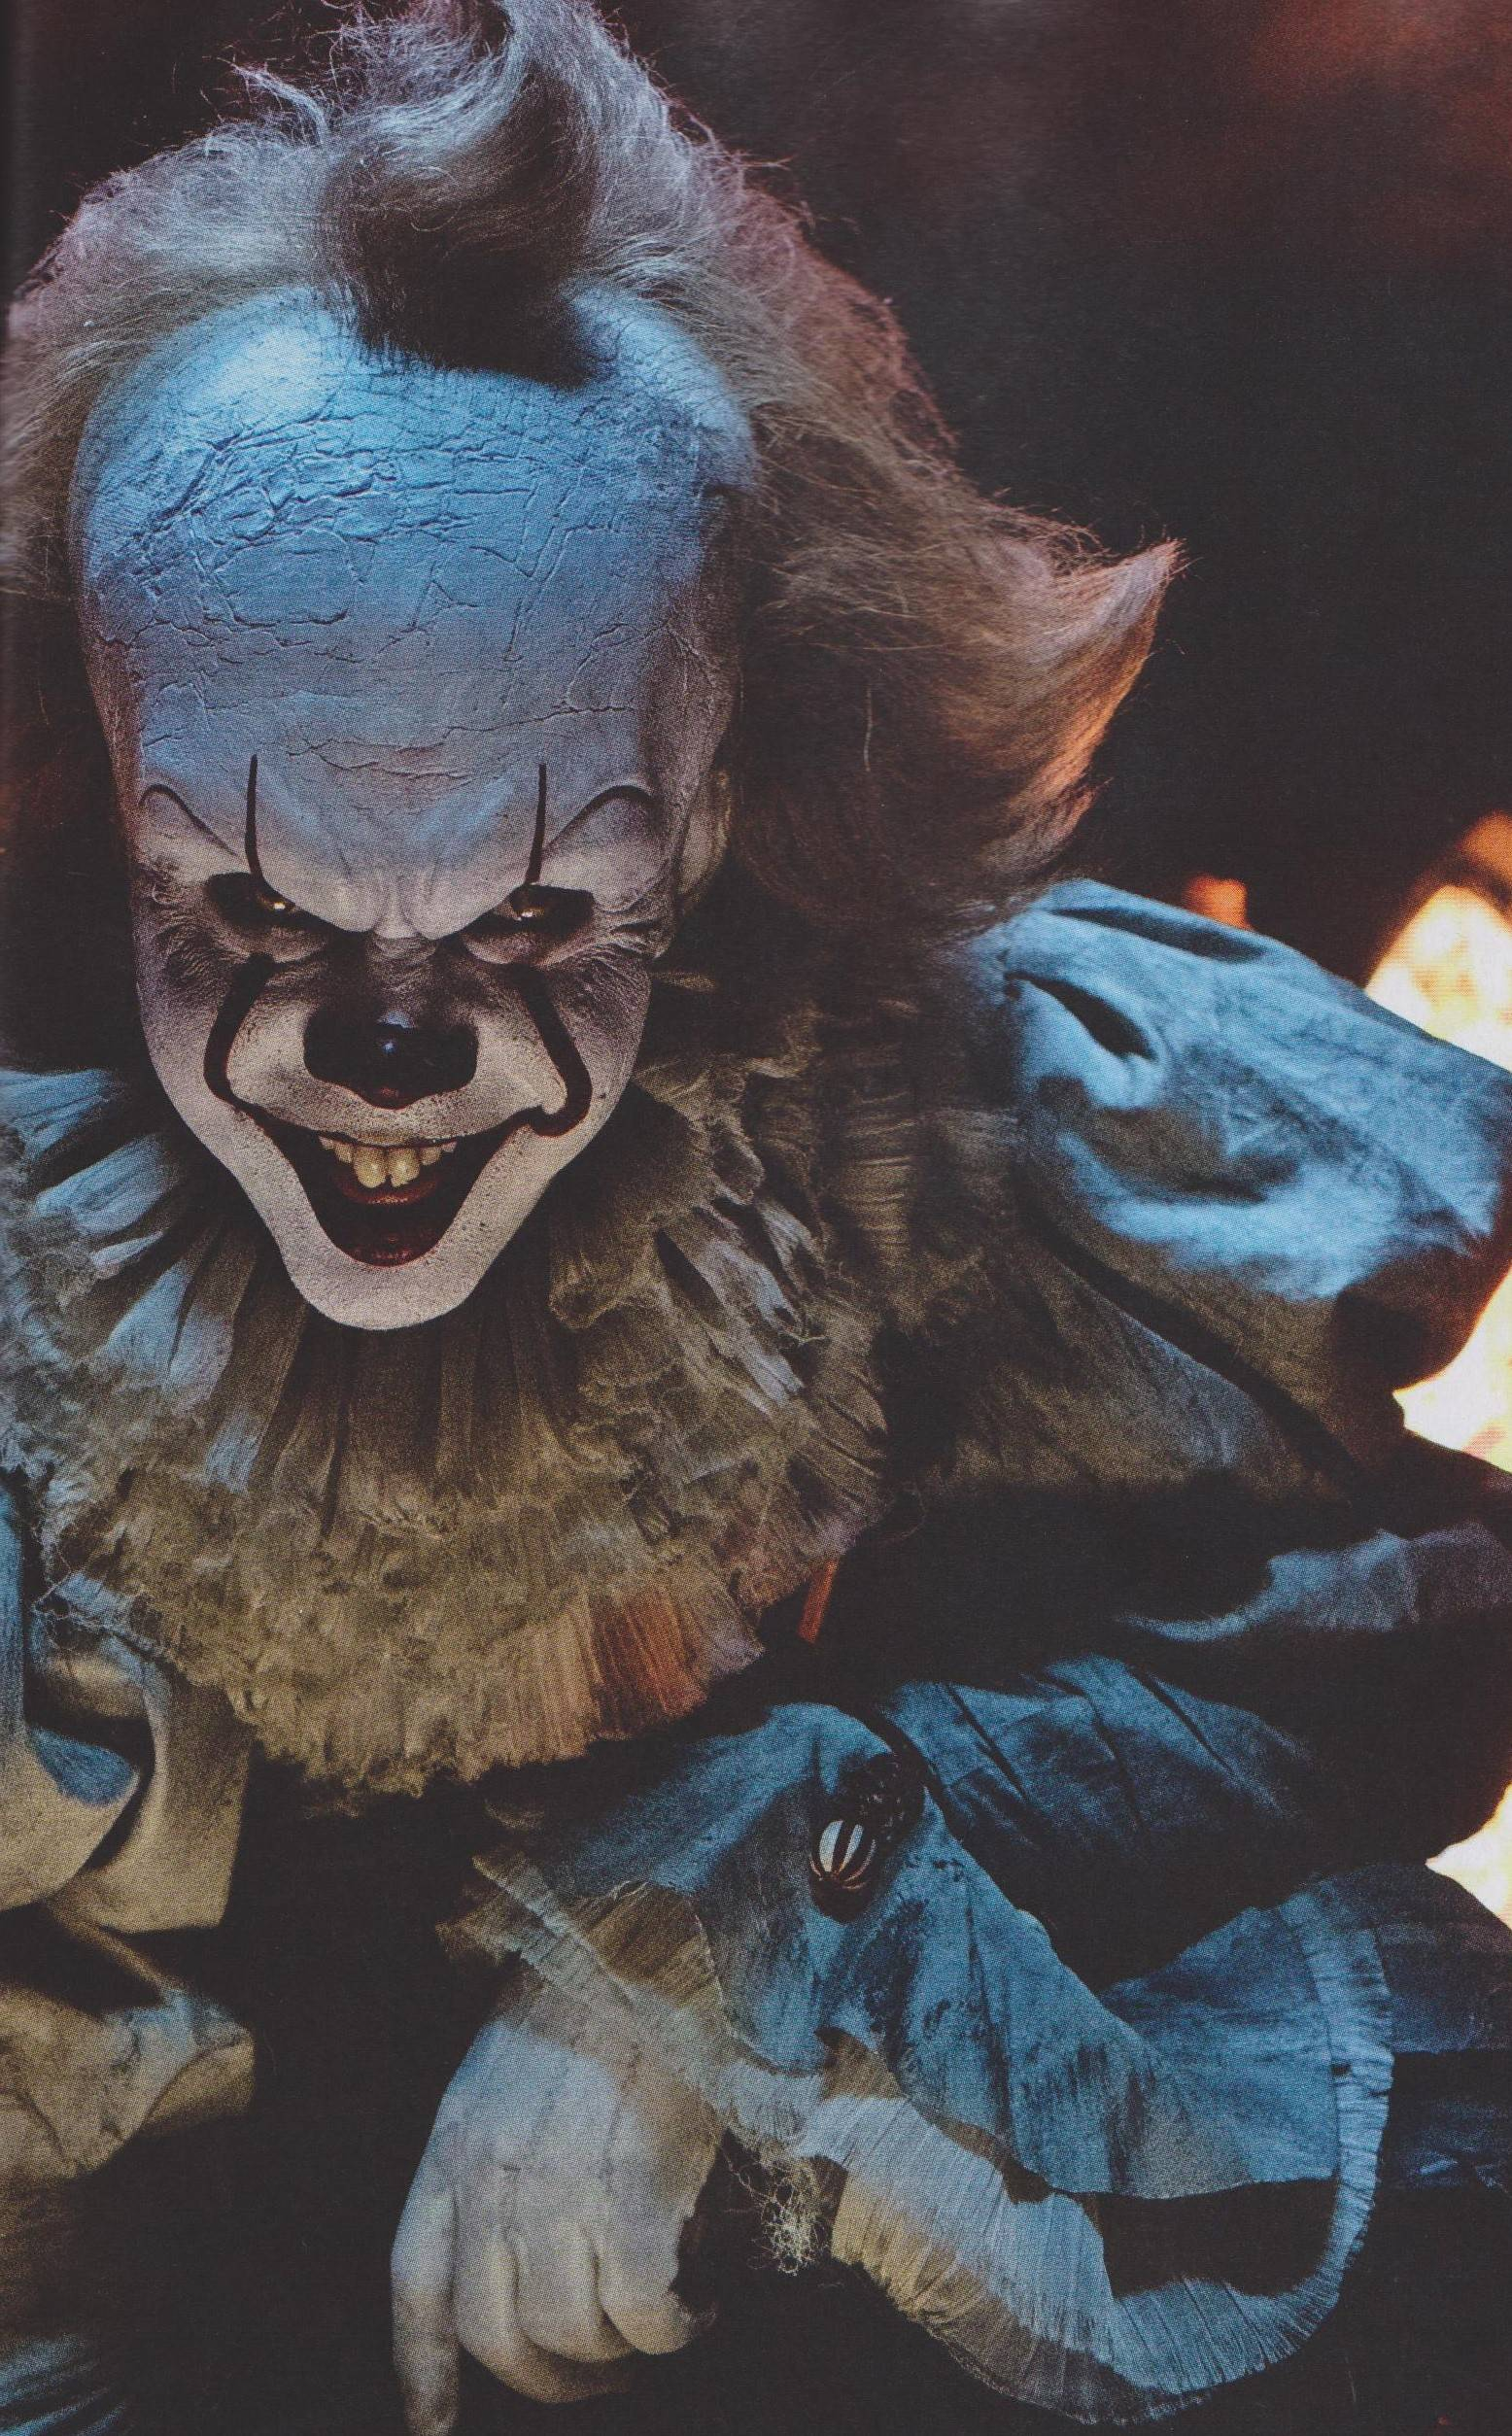 itempirepennywise - Venture Into the Sewers of Derry in This IT VR Experience